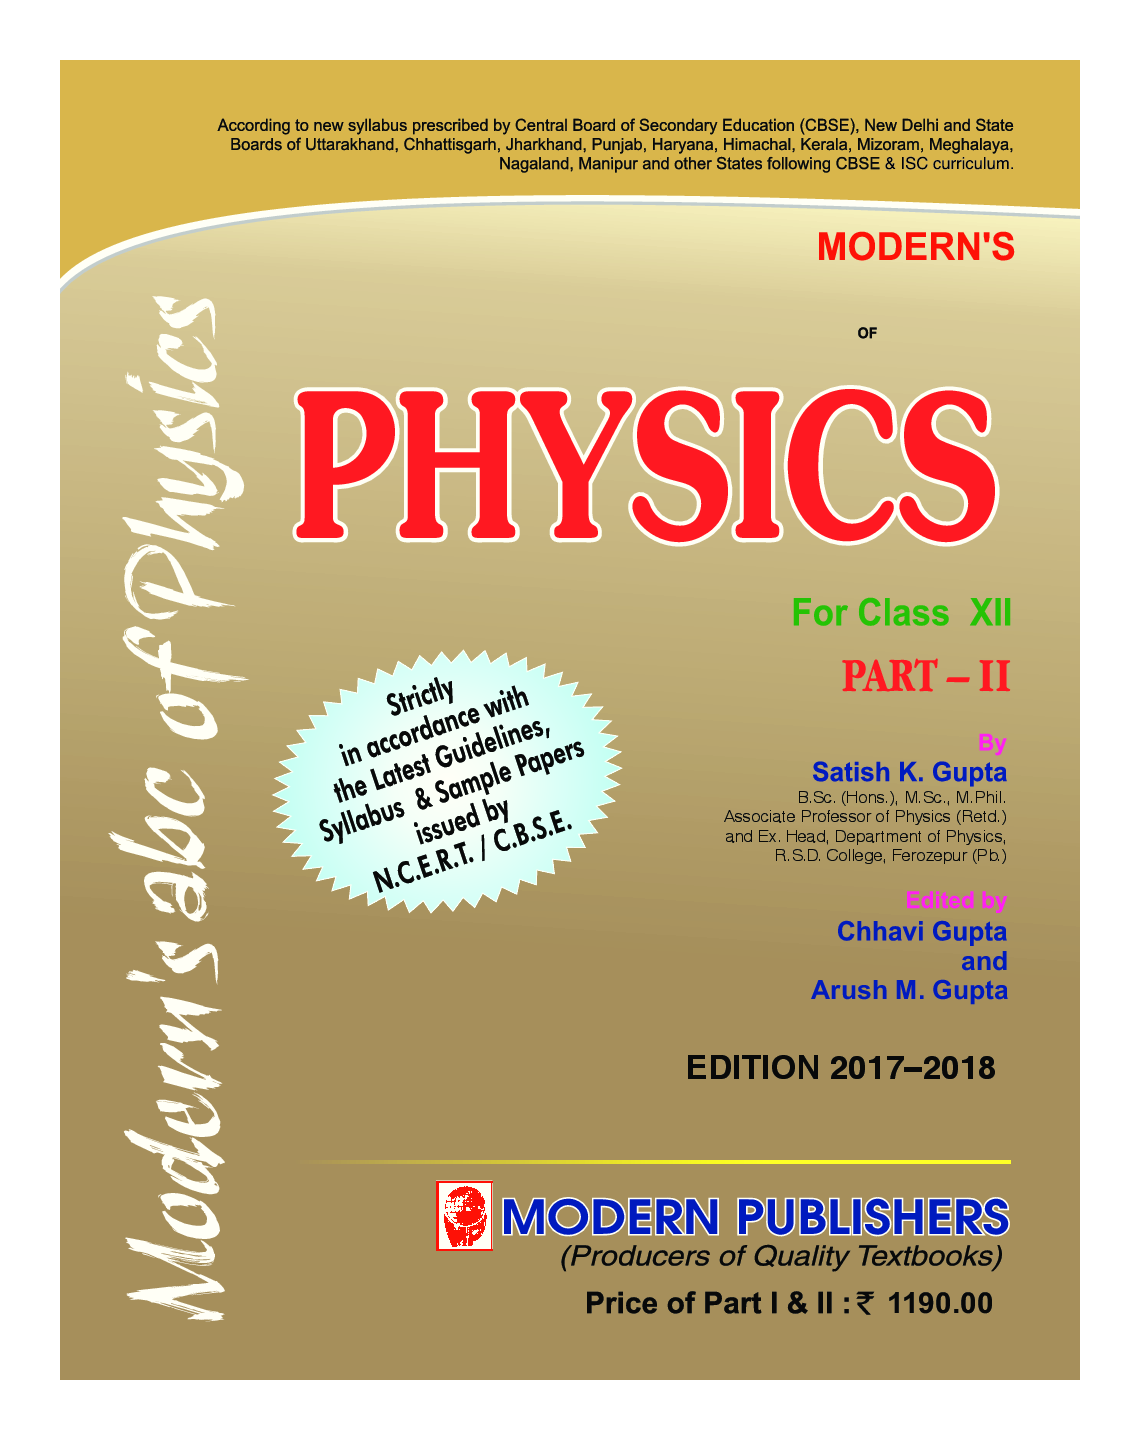 Download moderns abc plus of physics class 12 part ii by satish k moderns abc plus of physics class 12 part ii by satish k gupta fandeluxe Gallery